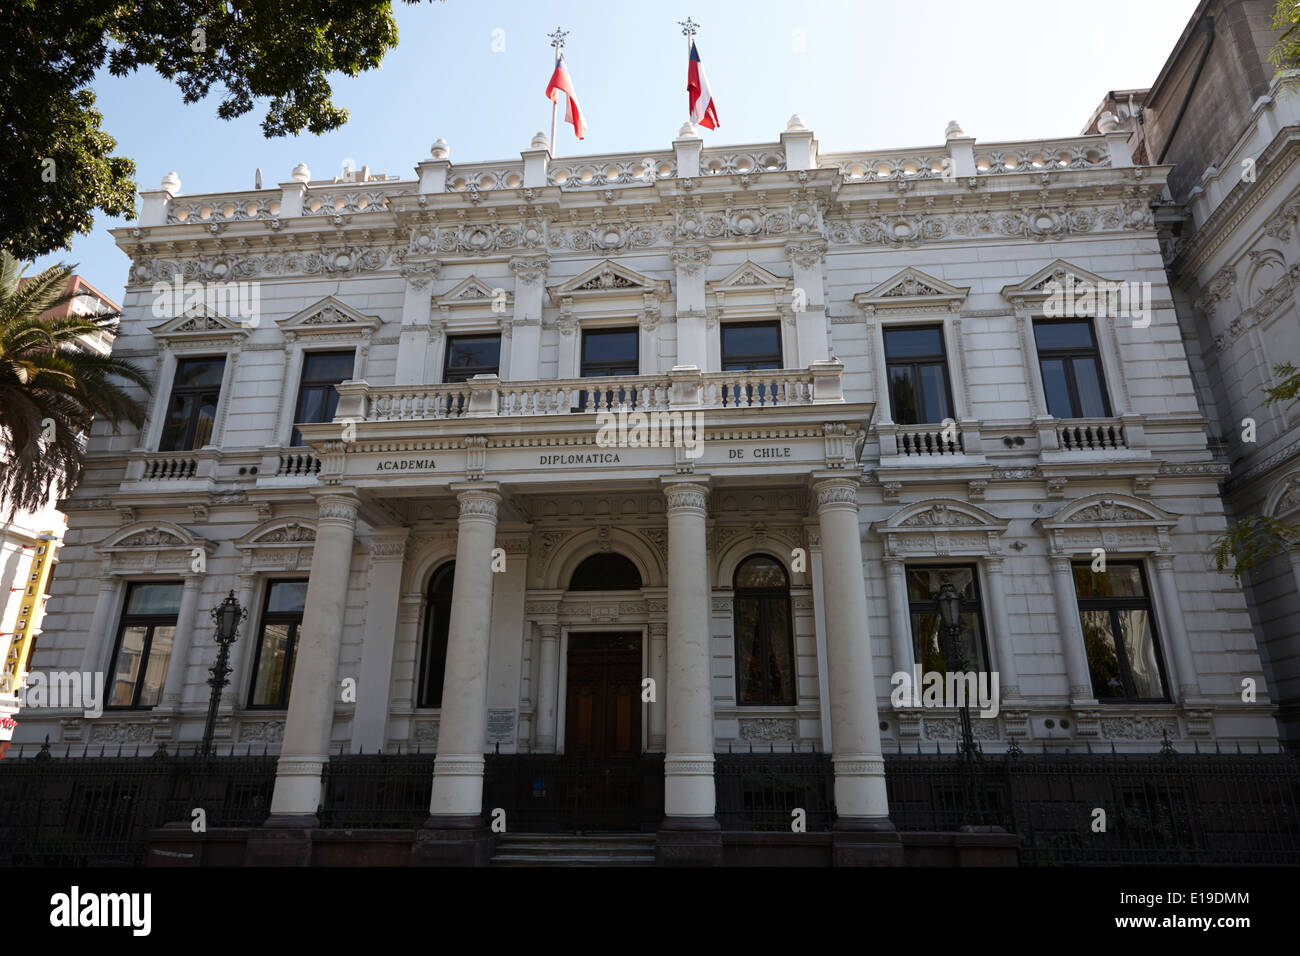 andres bello academia diplomatica de chile in edwards palace Santiago Chile - Stock Image